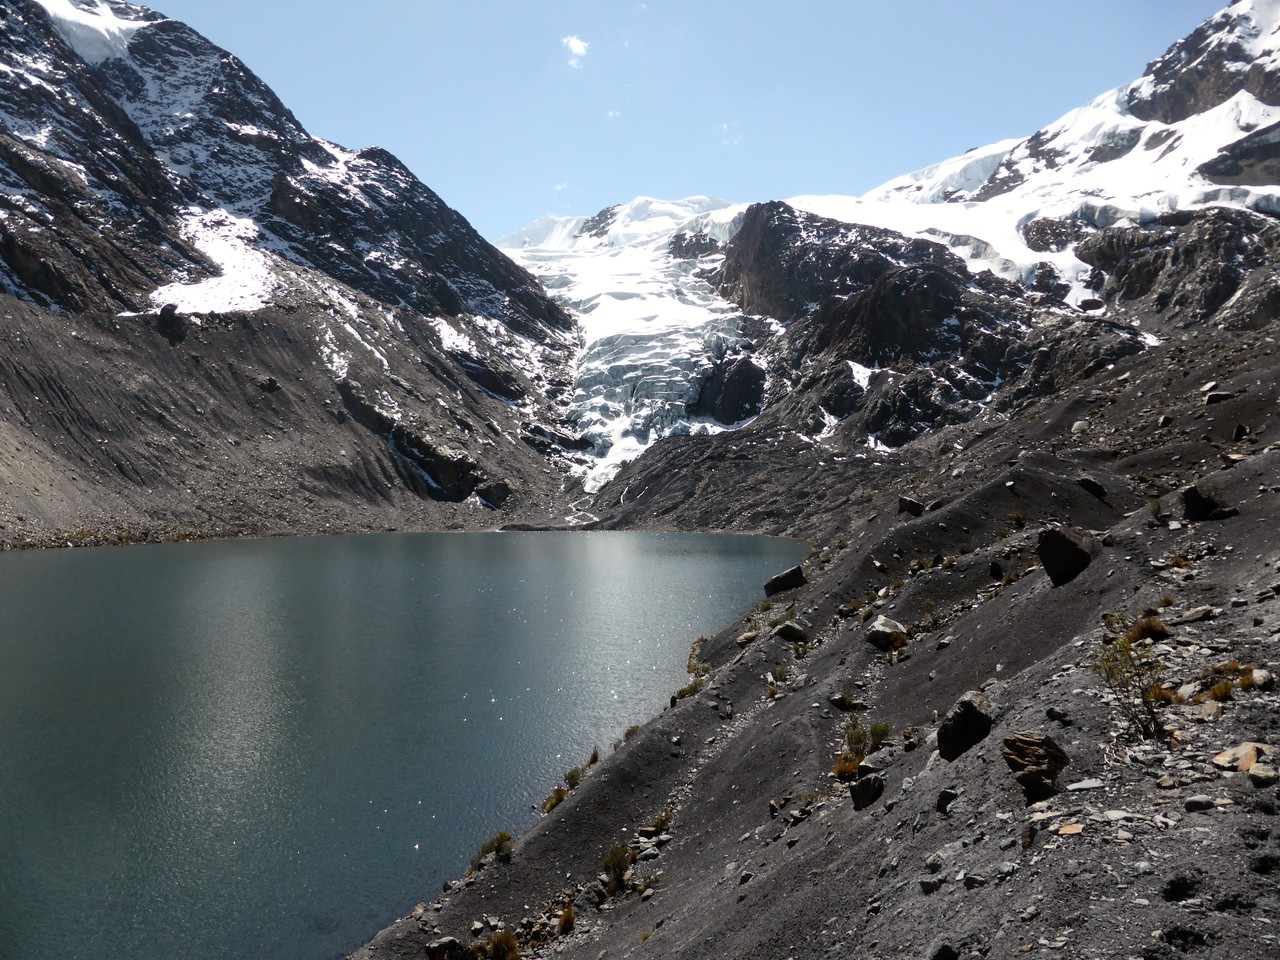 Glacier and glacier lake in the Bolivian Andes. Image by Dr Simon Cook